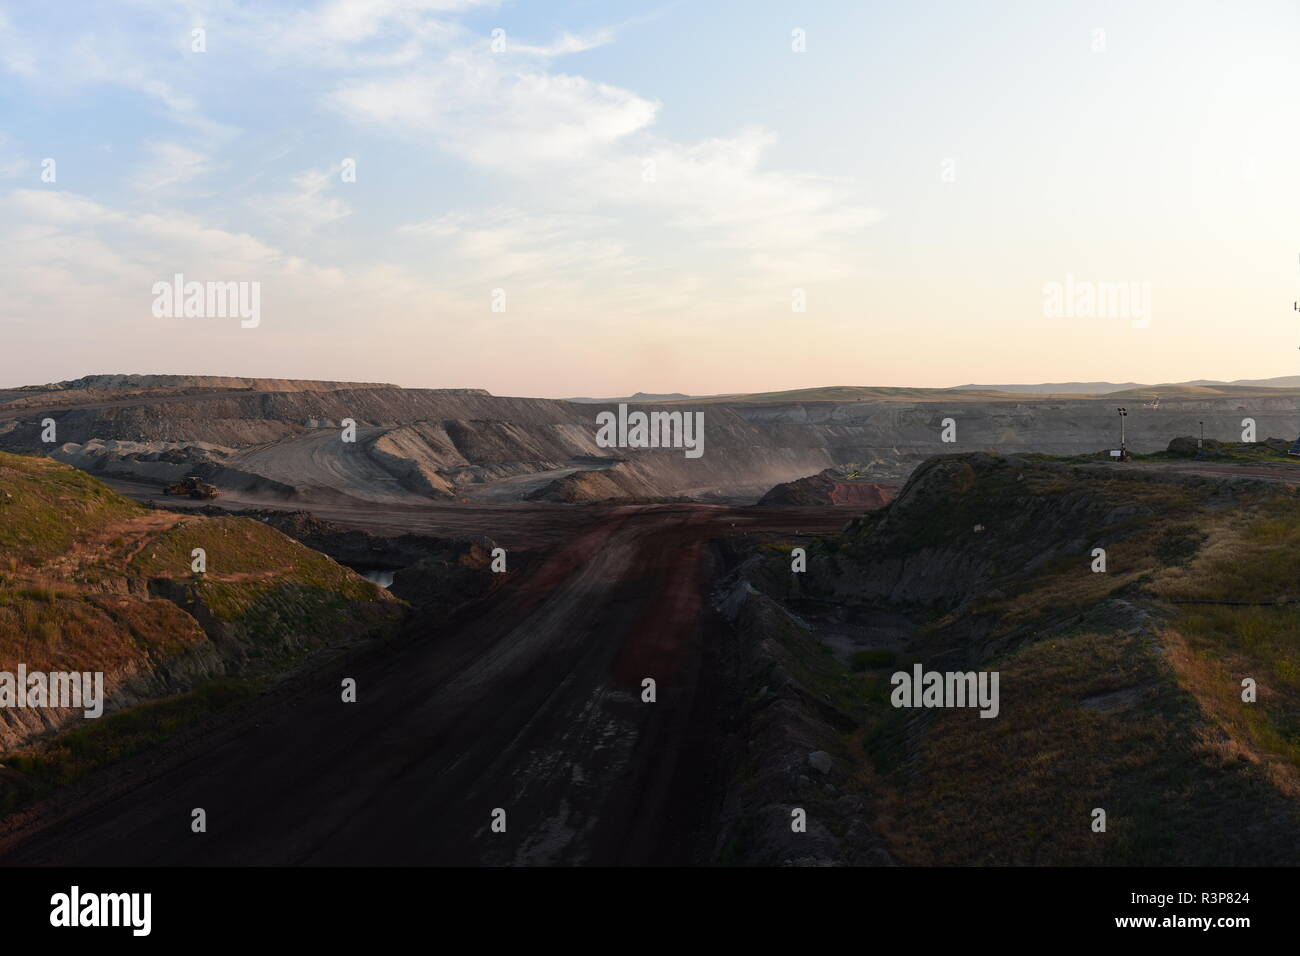 Lone vehicle driving through an open pit coal mine in the Powder River Basin, Wyoming / USA. Stock Photo